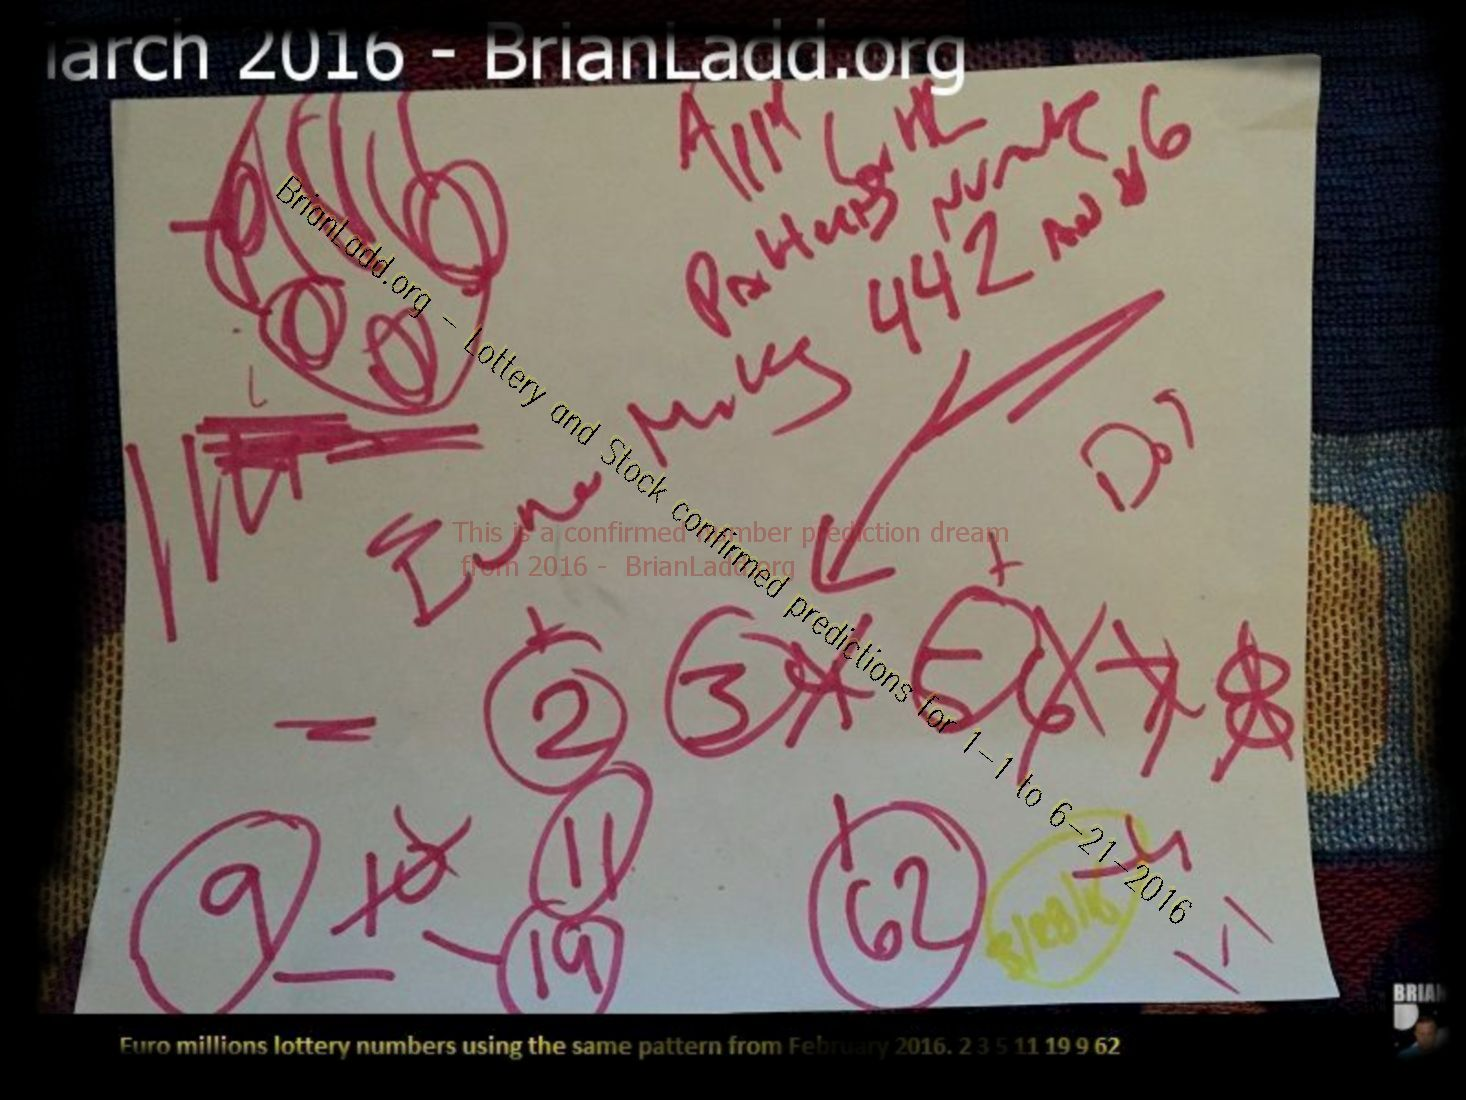 Confirmed_Lottery_and_Stock_Picks_for_2016_by_Psychic_Brian_Ladd_dd_number_and_date_7071_28_march_2016_1 .jpg